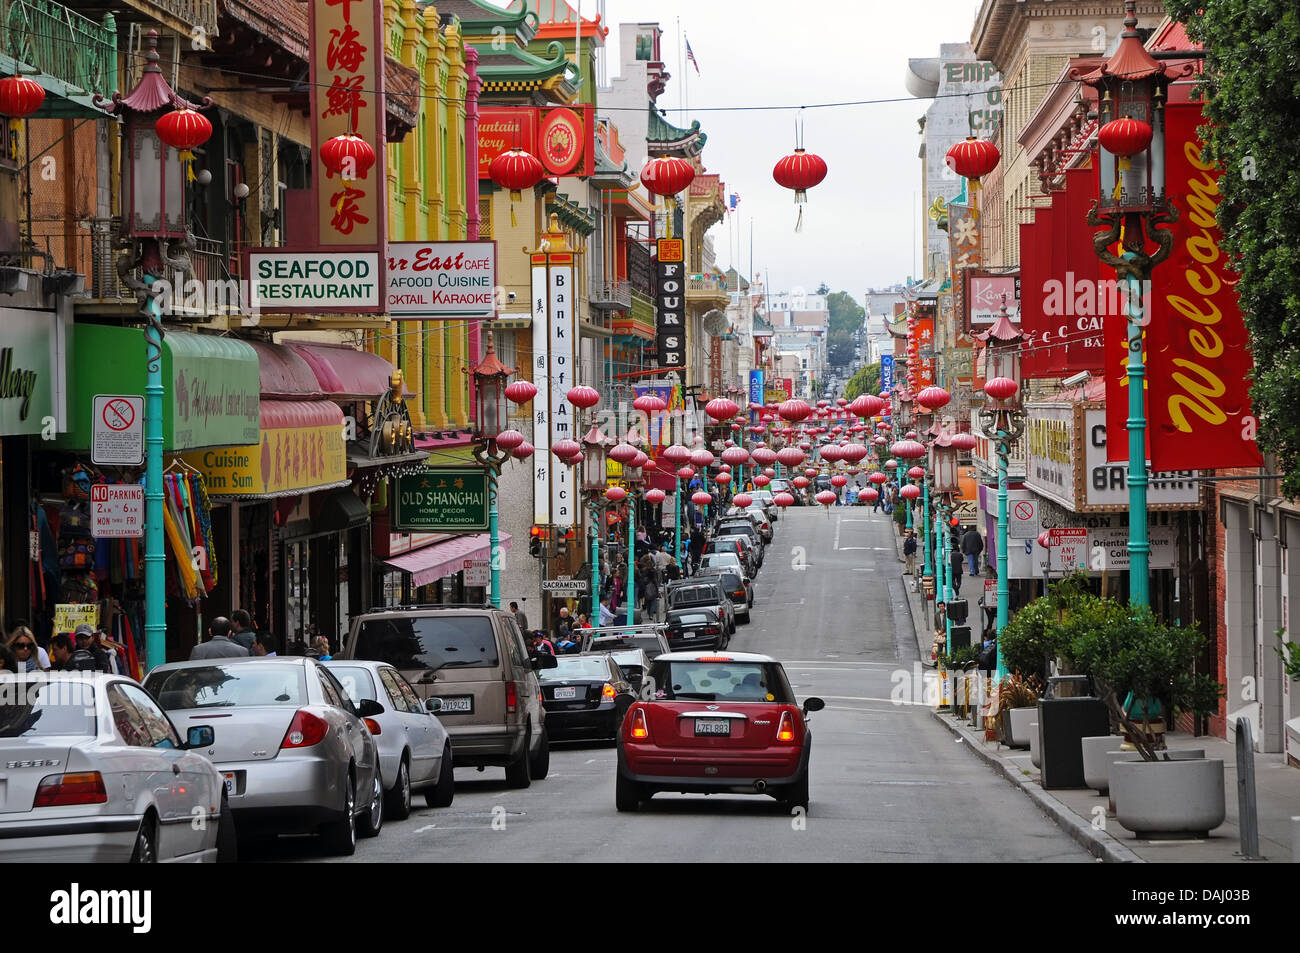 Chinatown in San Francisco, USA - Stock Image